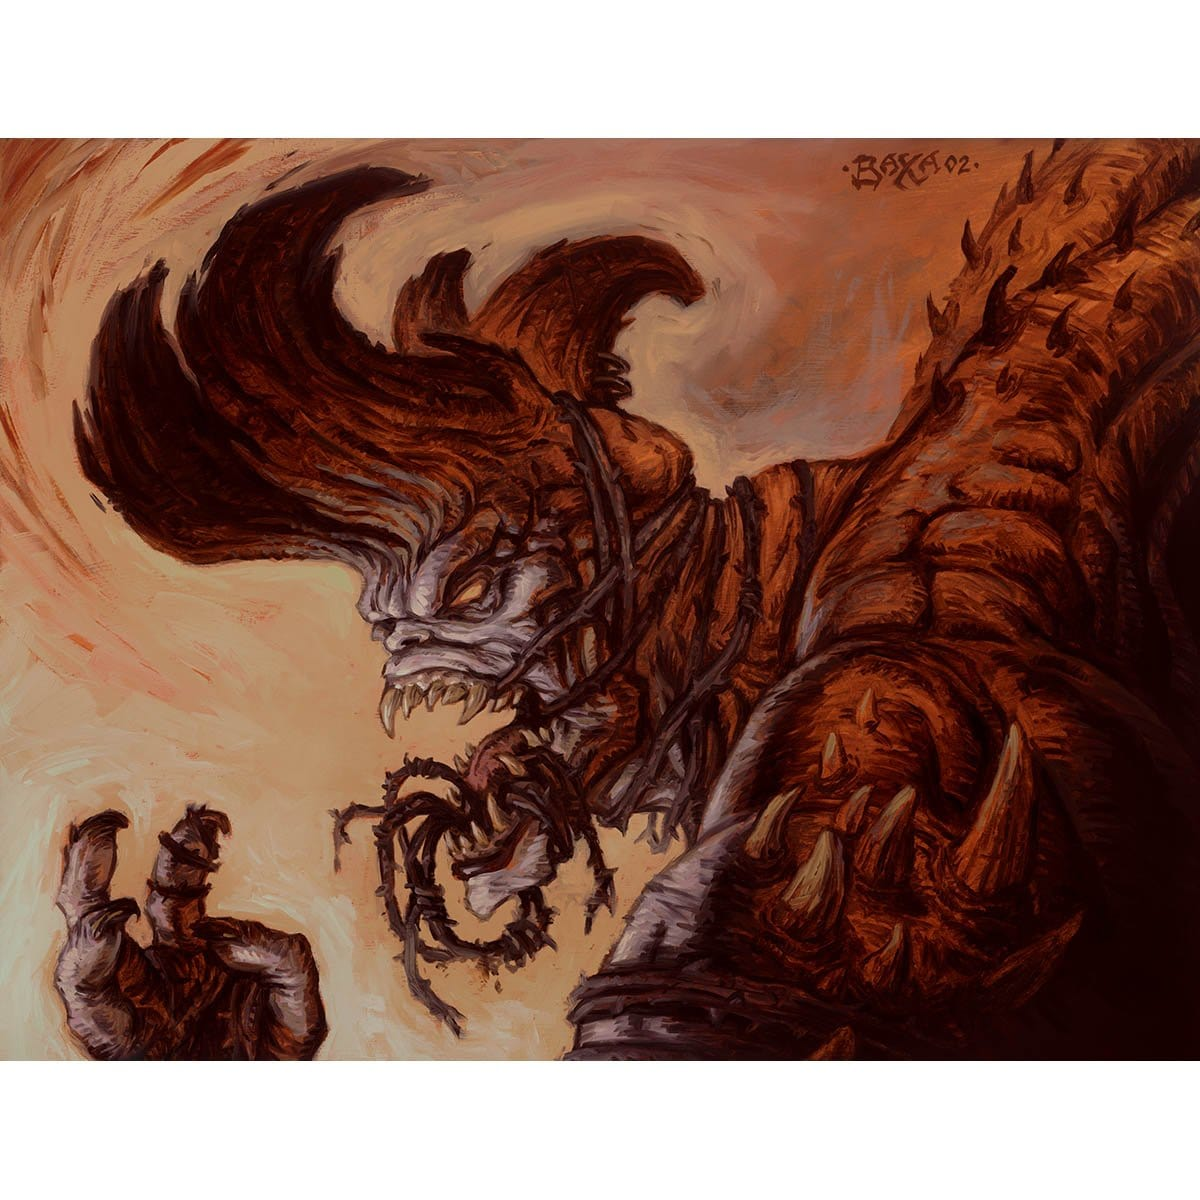 Havoc Demon Print - Print - Original Magic Art - Accessories for Magic the Gathering and other card games